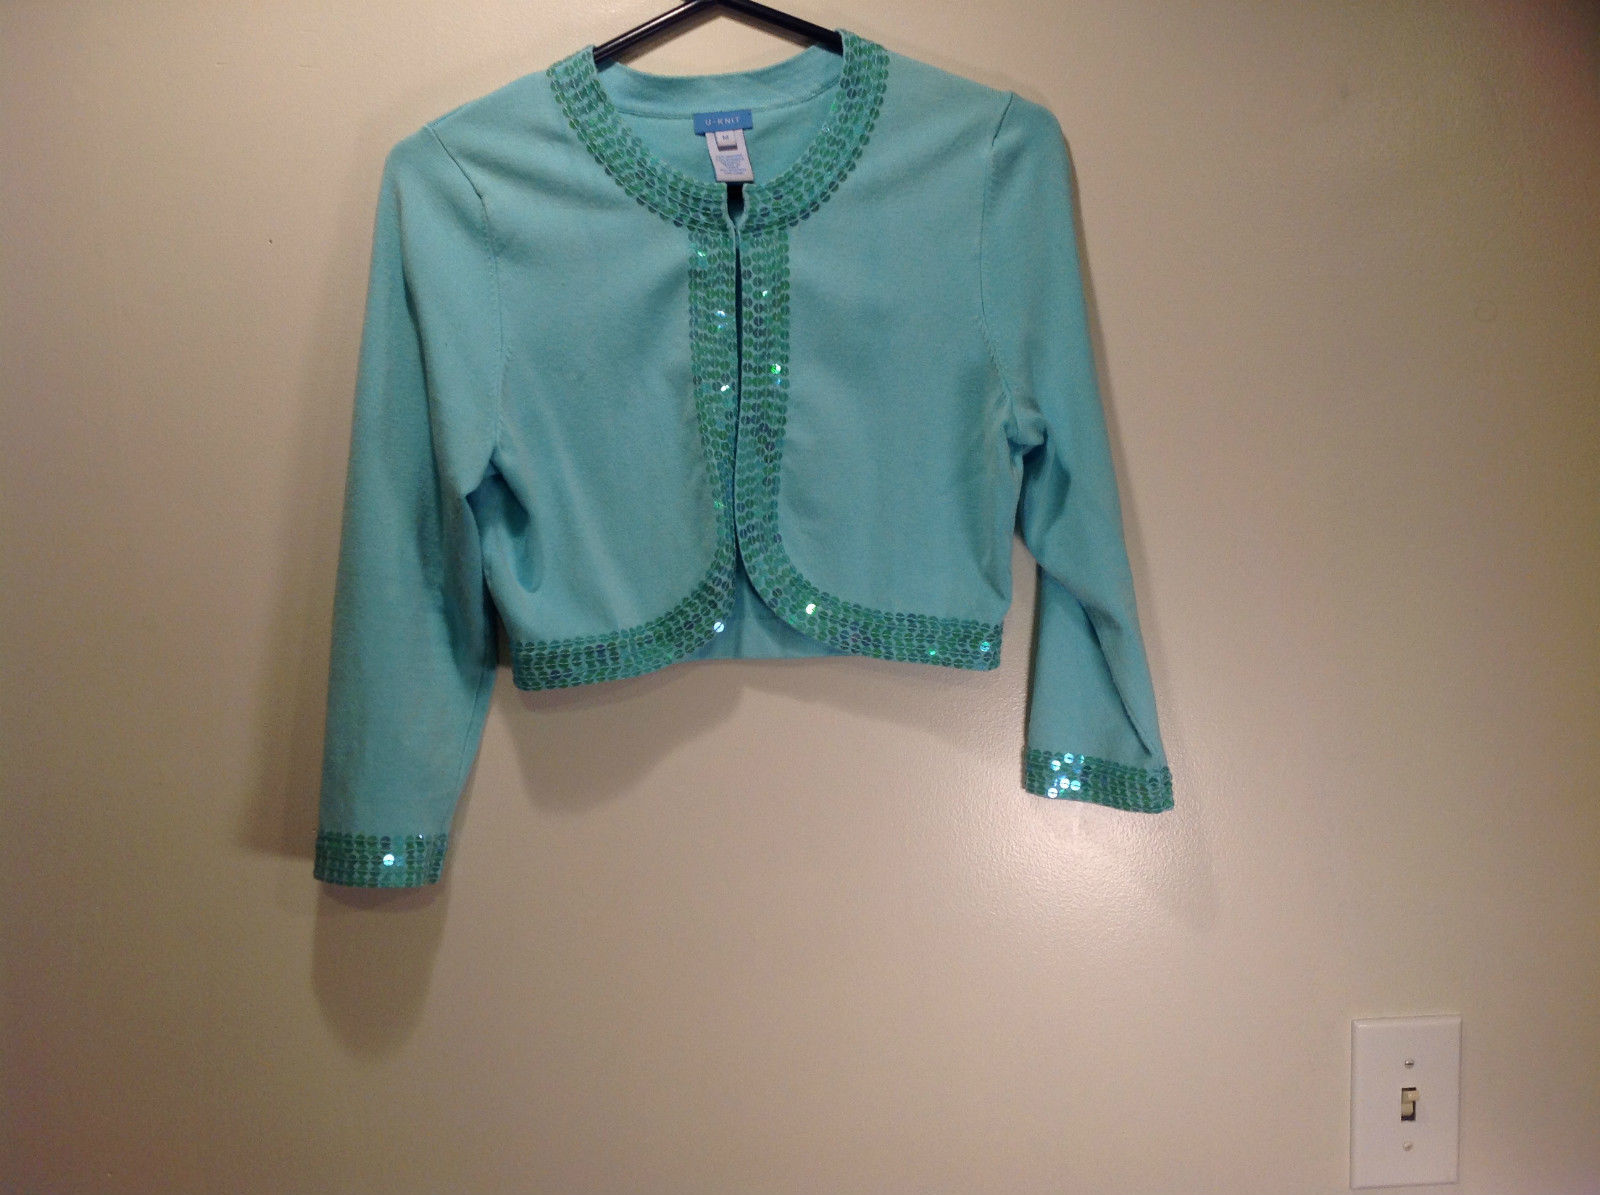 U Knit Light Blue Sweater with Circled Patterned Trim Down Front Sleeves Size M